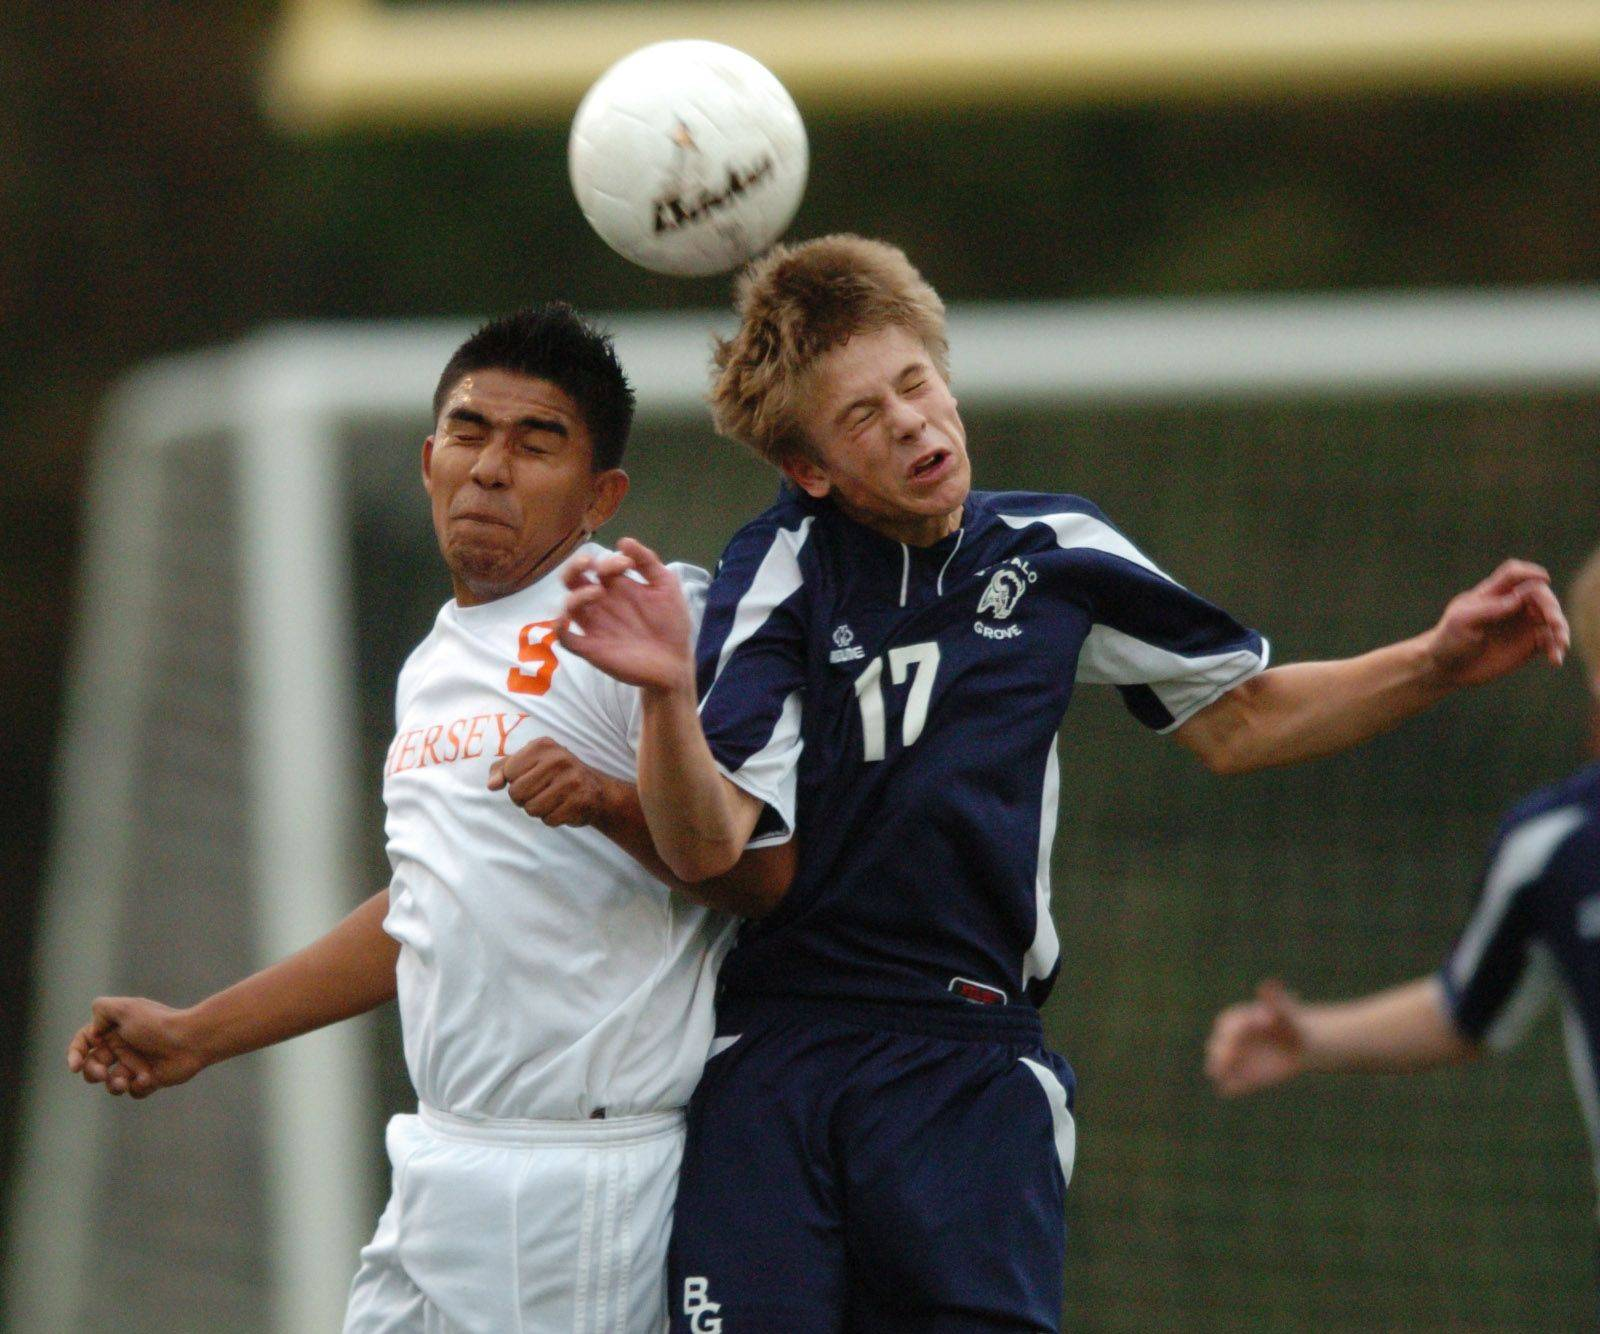 Senior Markus Fiordaliso, right, is looking to help Buffalo Grove take a big step up in the Mid-Suburban East.